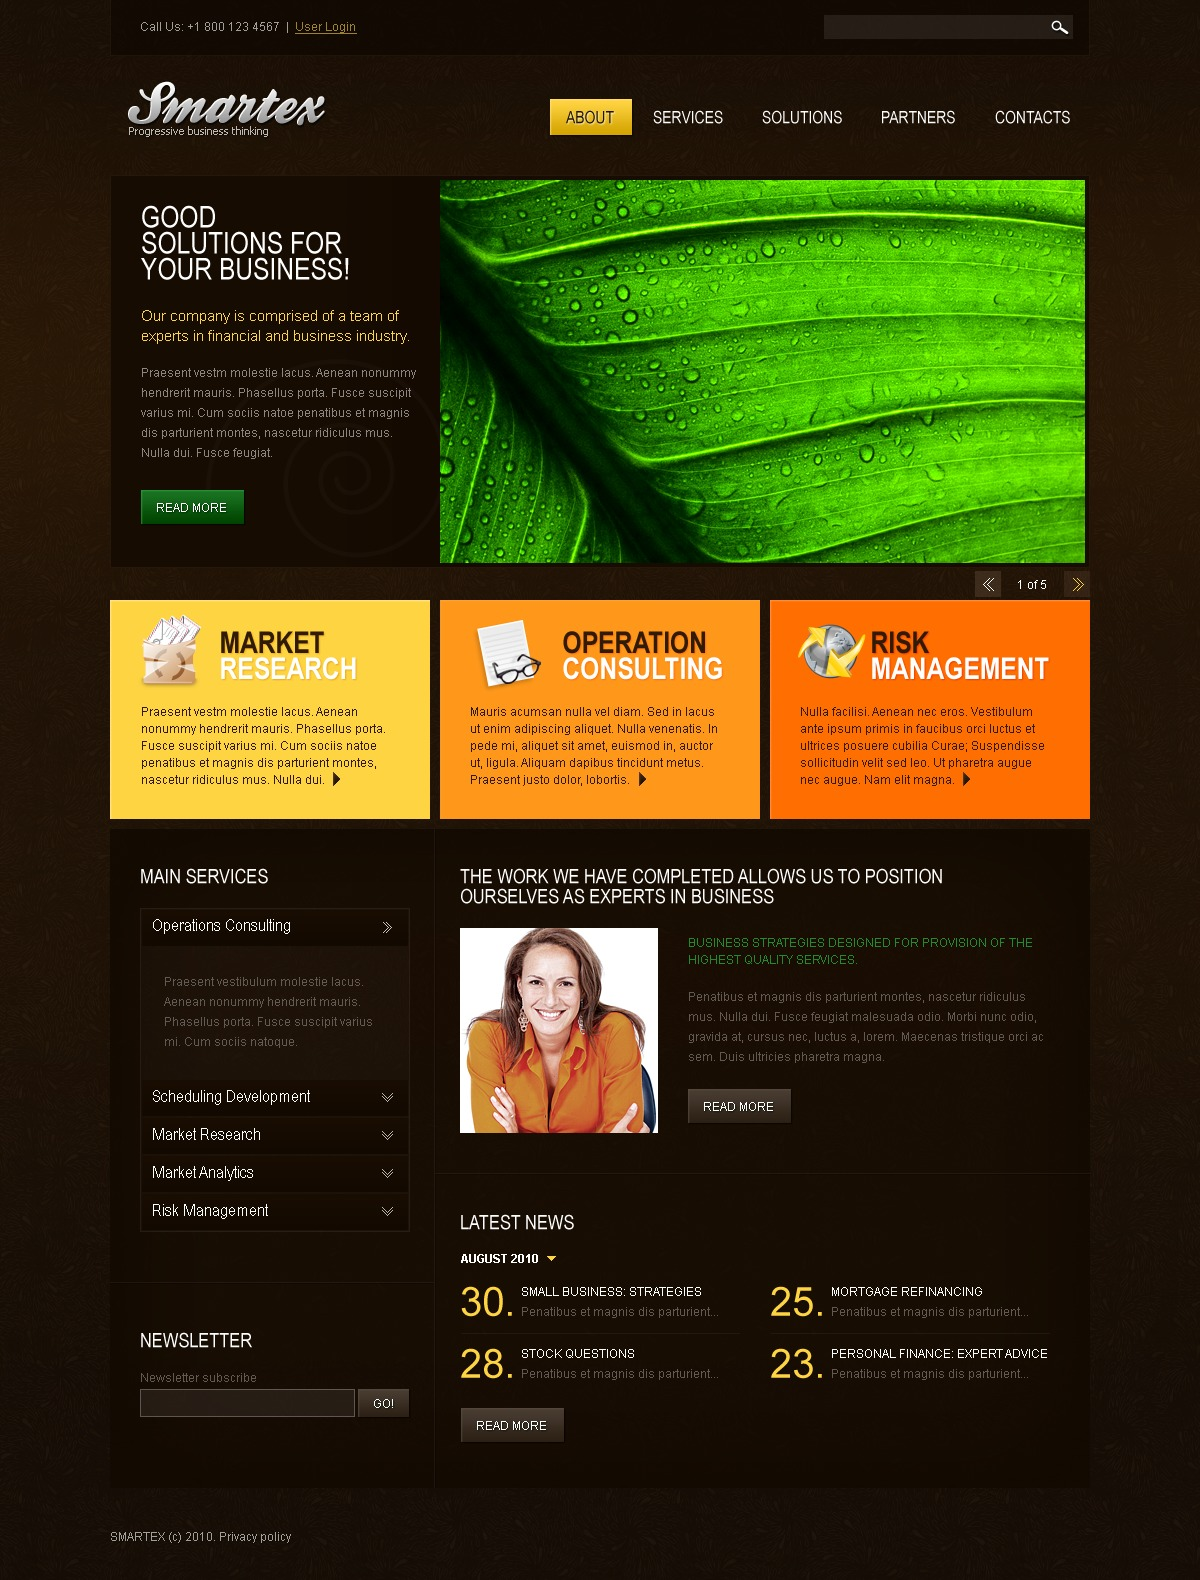 The Smartex Business Company PSD Design 54449, one of the best PSD templates of its kind (business, wide, jquery), also known as smartex business company PSD template, corporate solutions PSD template, innovations PSD template, contacts PSD template, service PSD template, support PSD template, information dealer PSD template, stocks PSD template, team PSD template, success PSD template, money PSD template, marketing PSD template, director PSD template, manager PSD template, analytics PSD template, planning PSD template, limited PSD template, office PSD template, sales and related with smartex business company, corporate solutions, innovations, contacts, service, support, information dealer, stocks, team, success, money, marketing, director, manager, analytics, planning, limited, office, sales, etc.